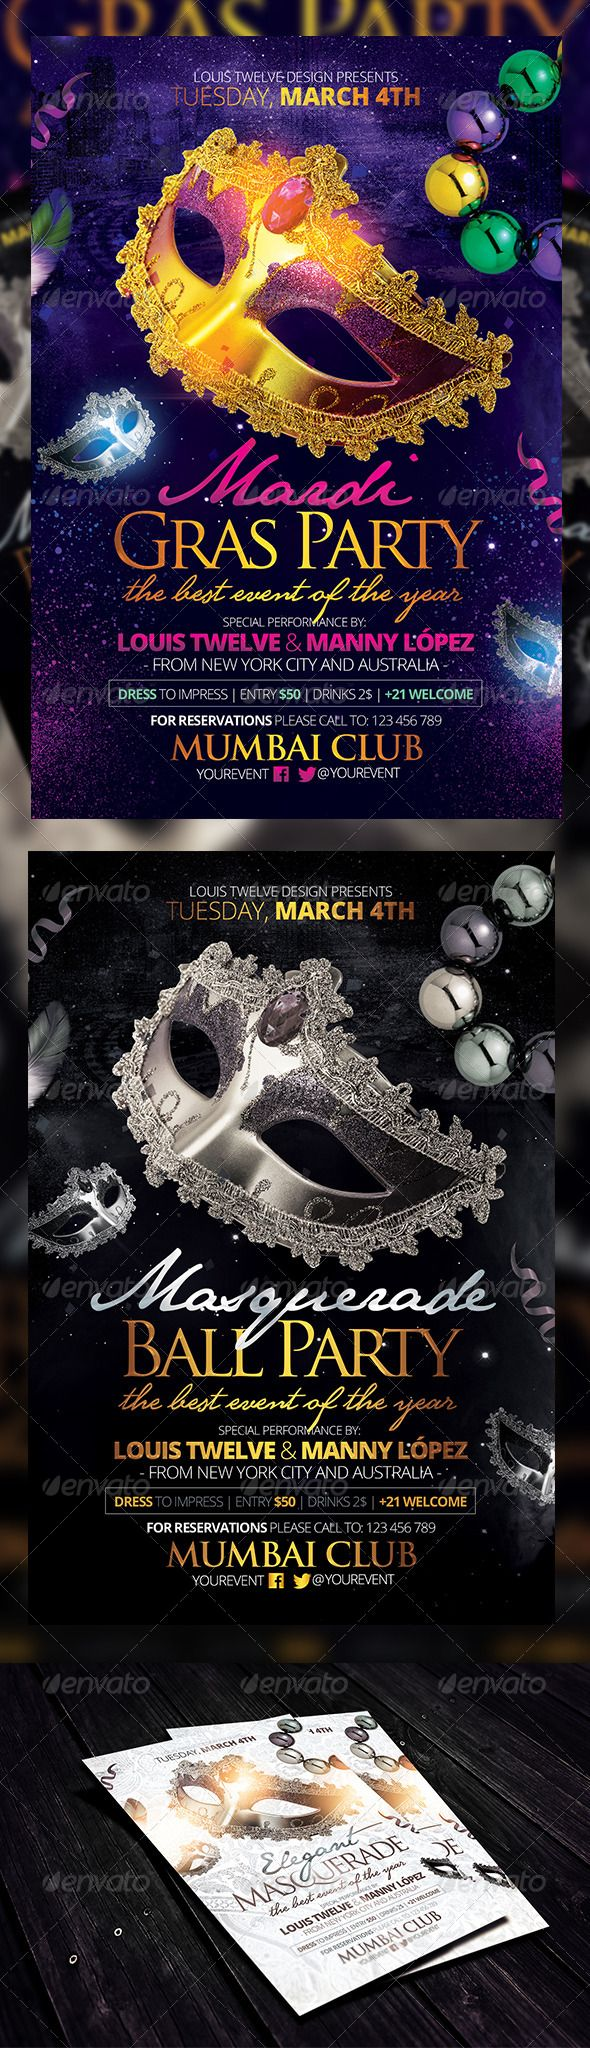 masquerade ball mardi gras party flyers template